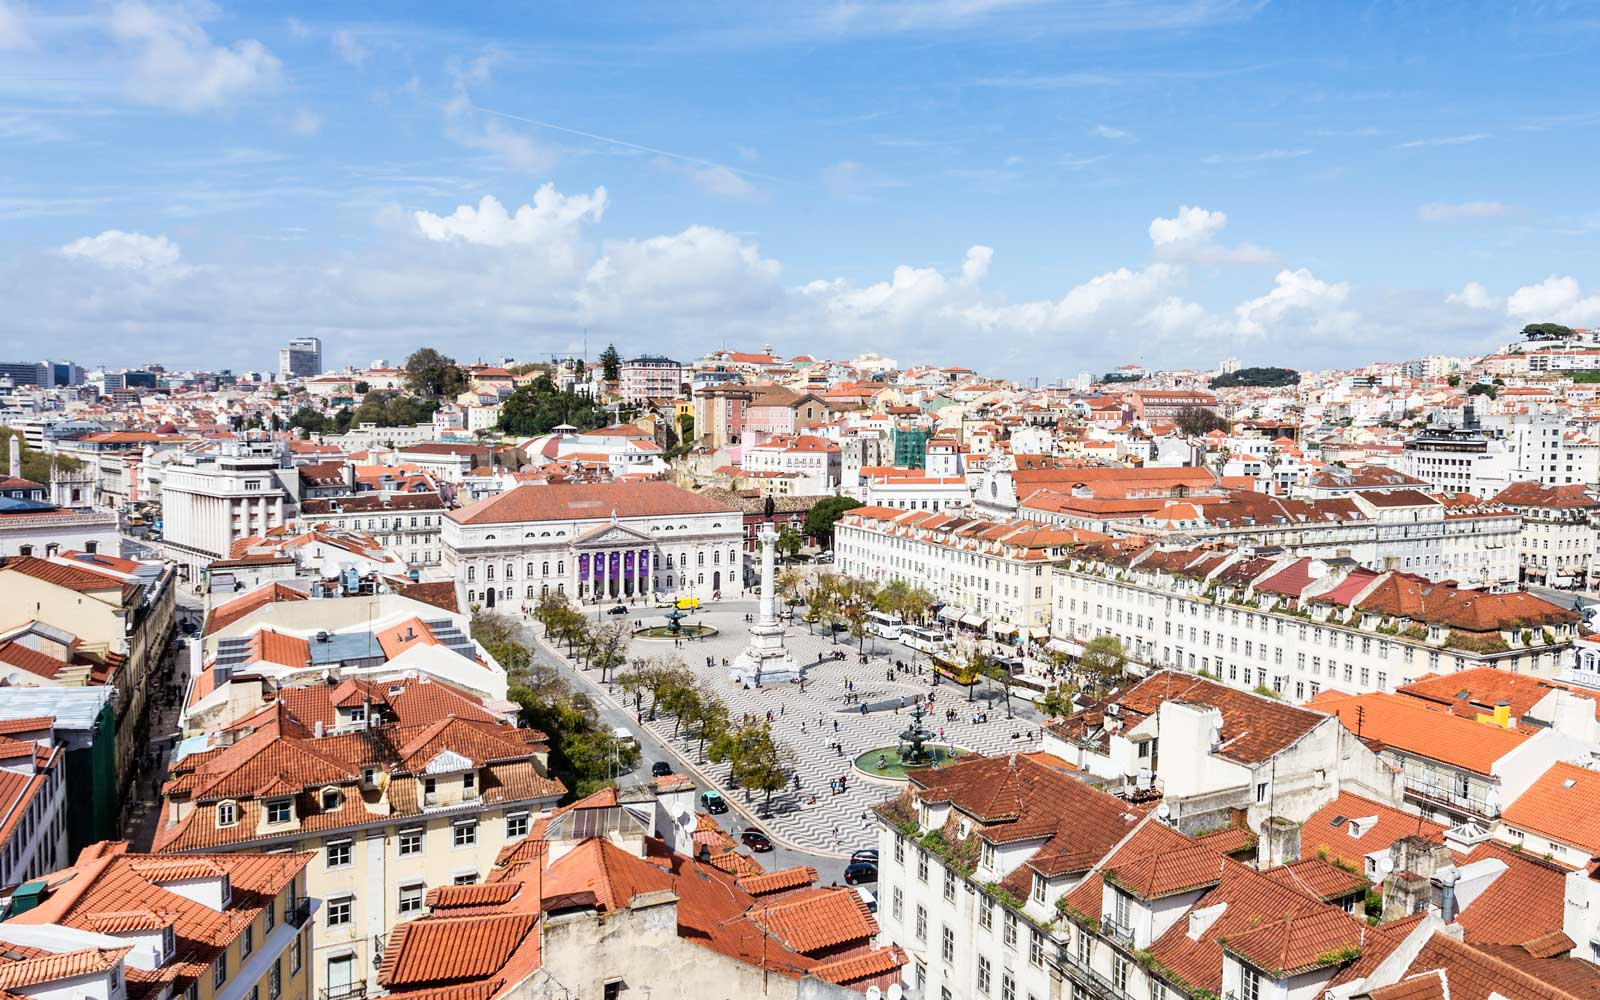 How to Decorate Your House Like Lisbon